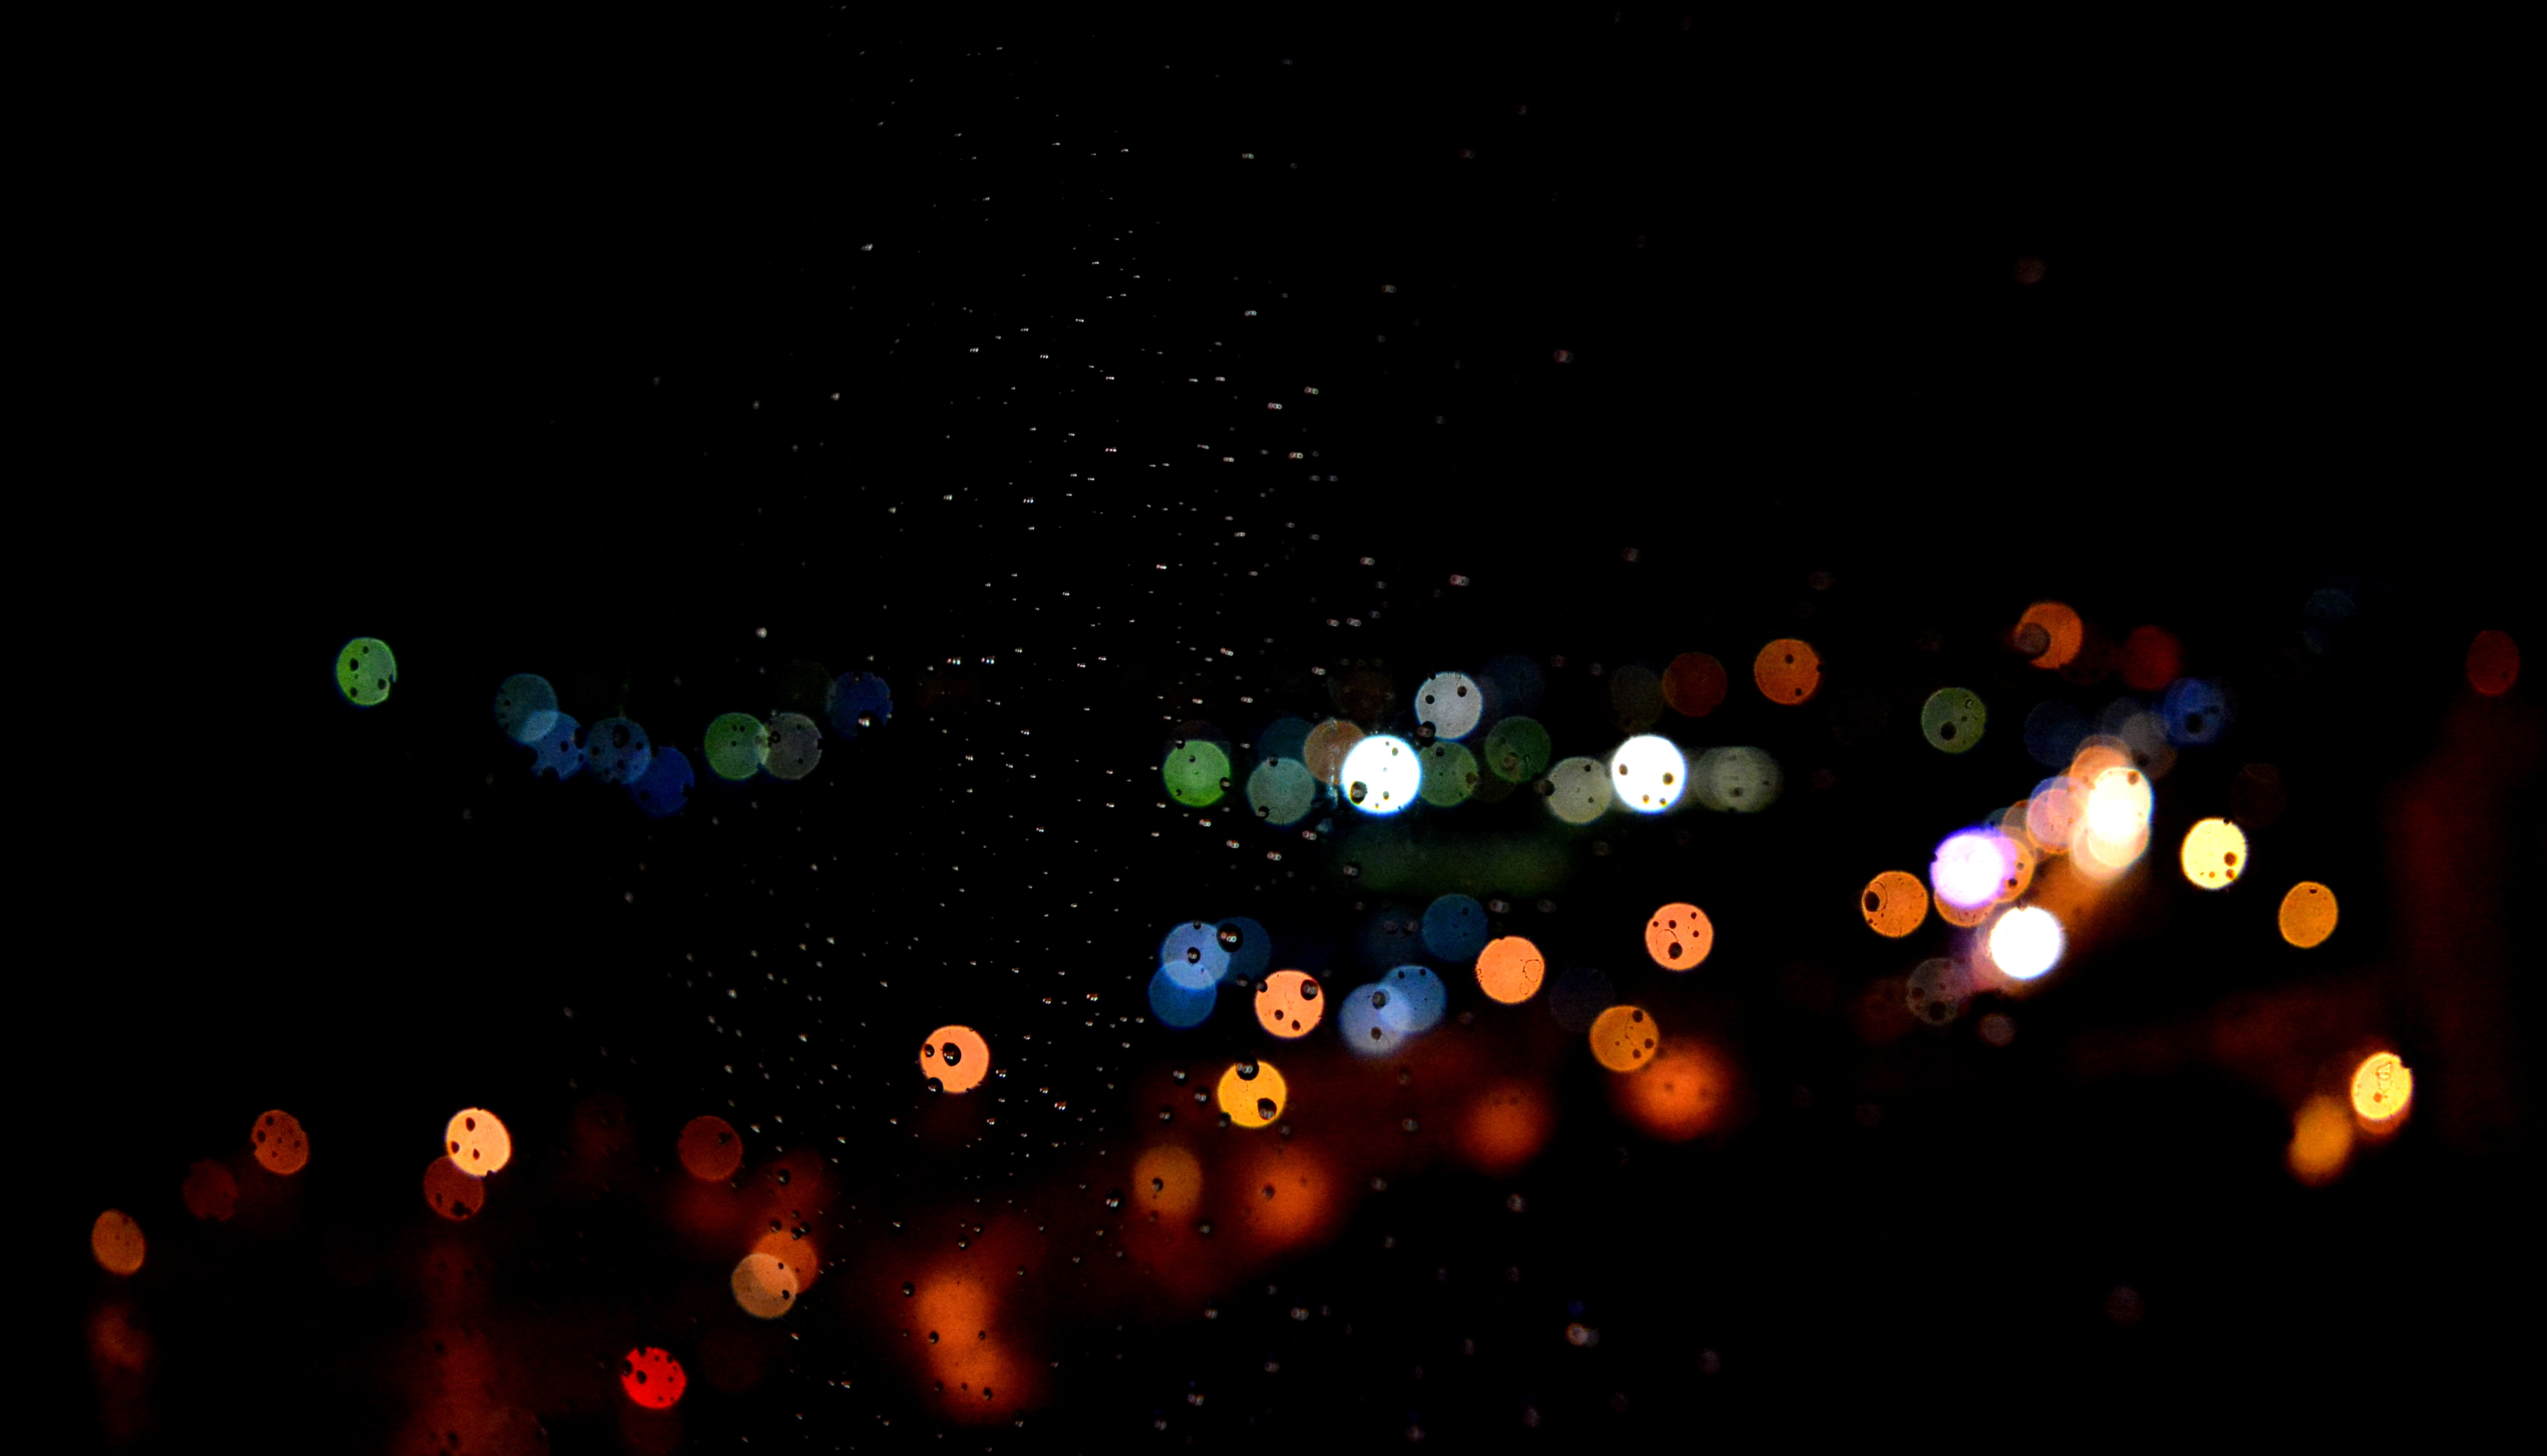 bokeh photography wallpaper